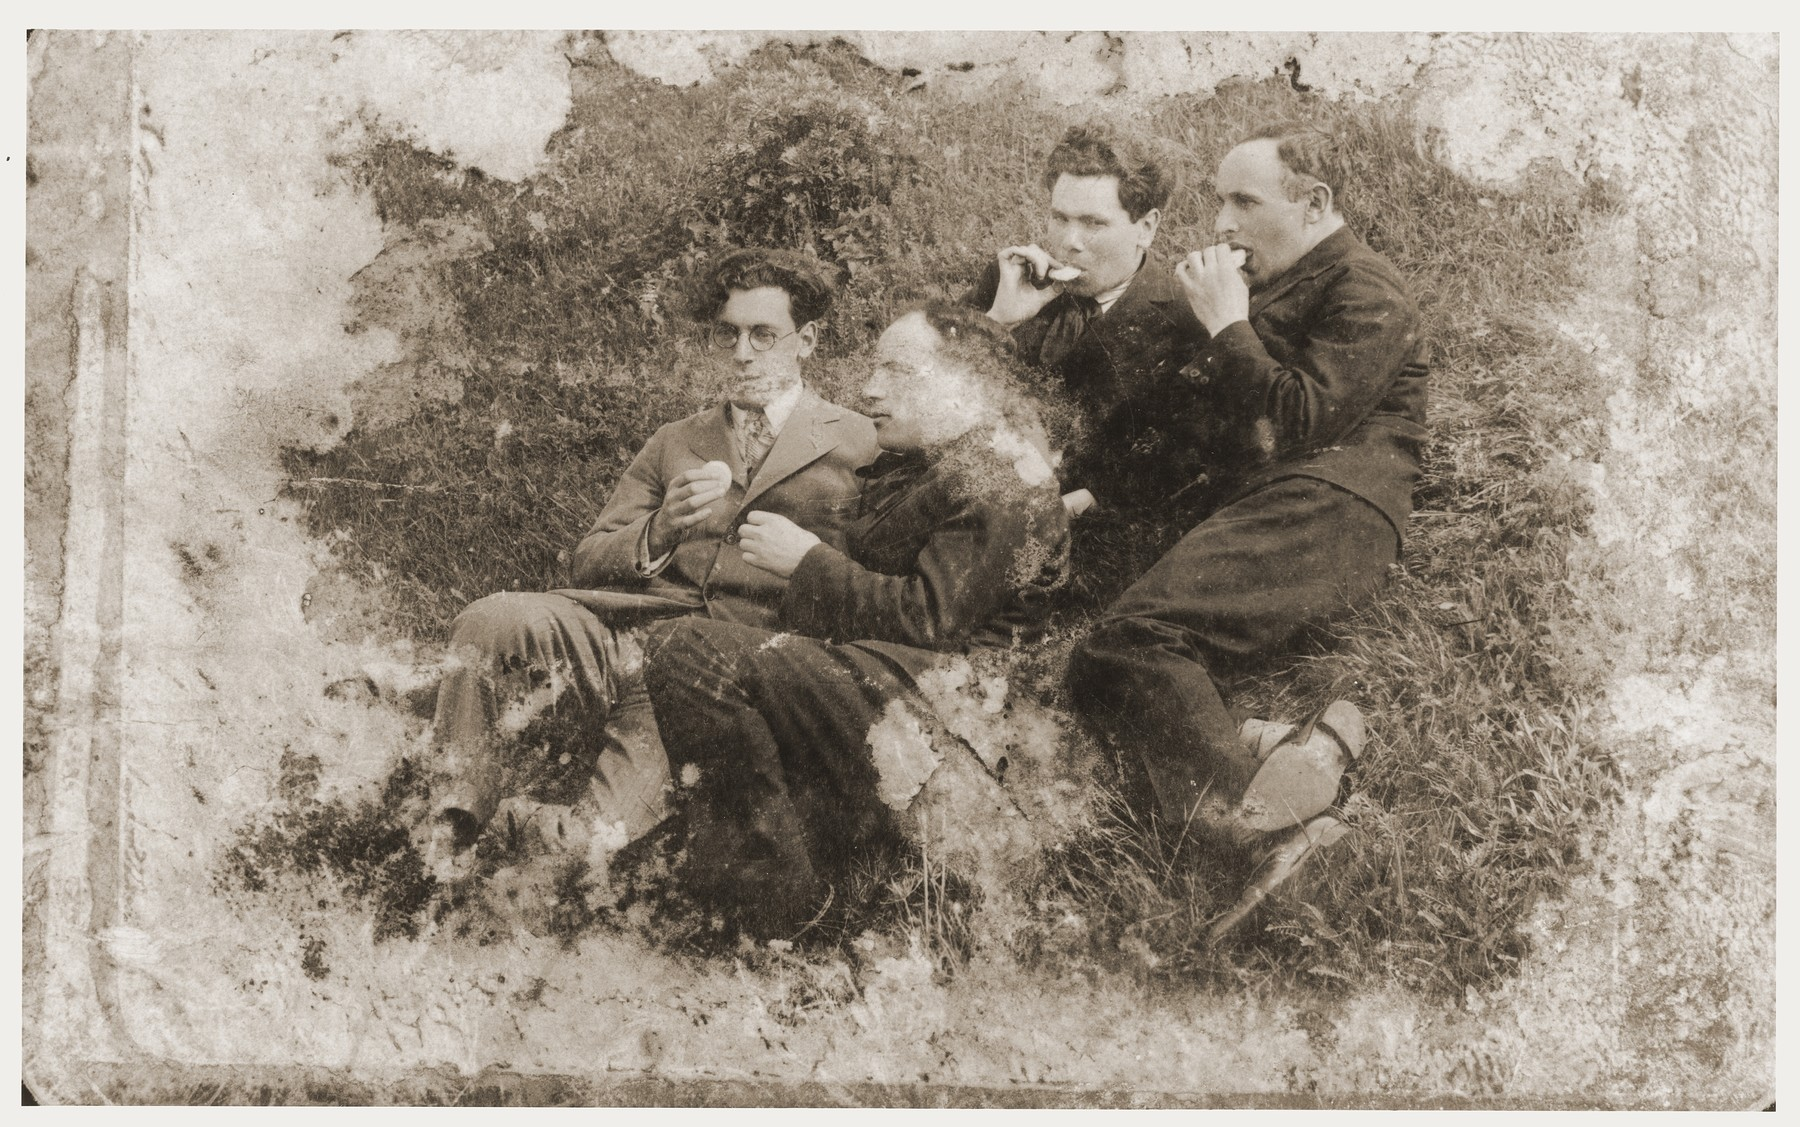 Damaged photograph of a group of friends in Kovno, Lithuania that survived the destruction of the Kovno ghetto.  Among those pictured is the artist Jacob Lifschitz (second from the right).  The photograph was buried with the artist's drawings shortly before the liquidation of the ghetto, and retrieved by his wife after the liberation.